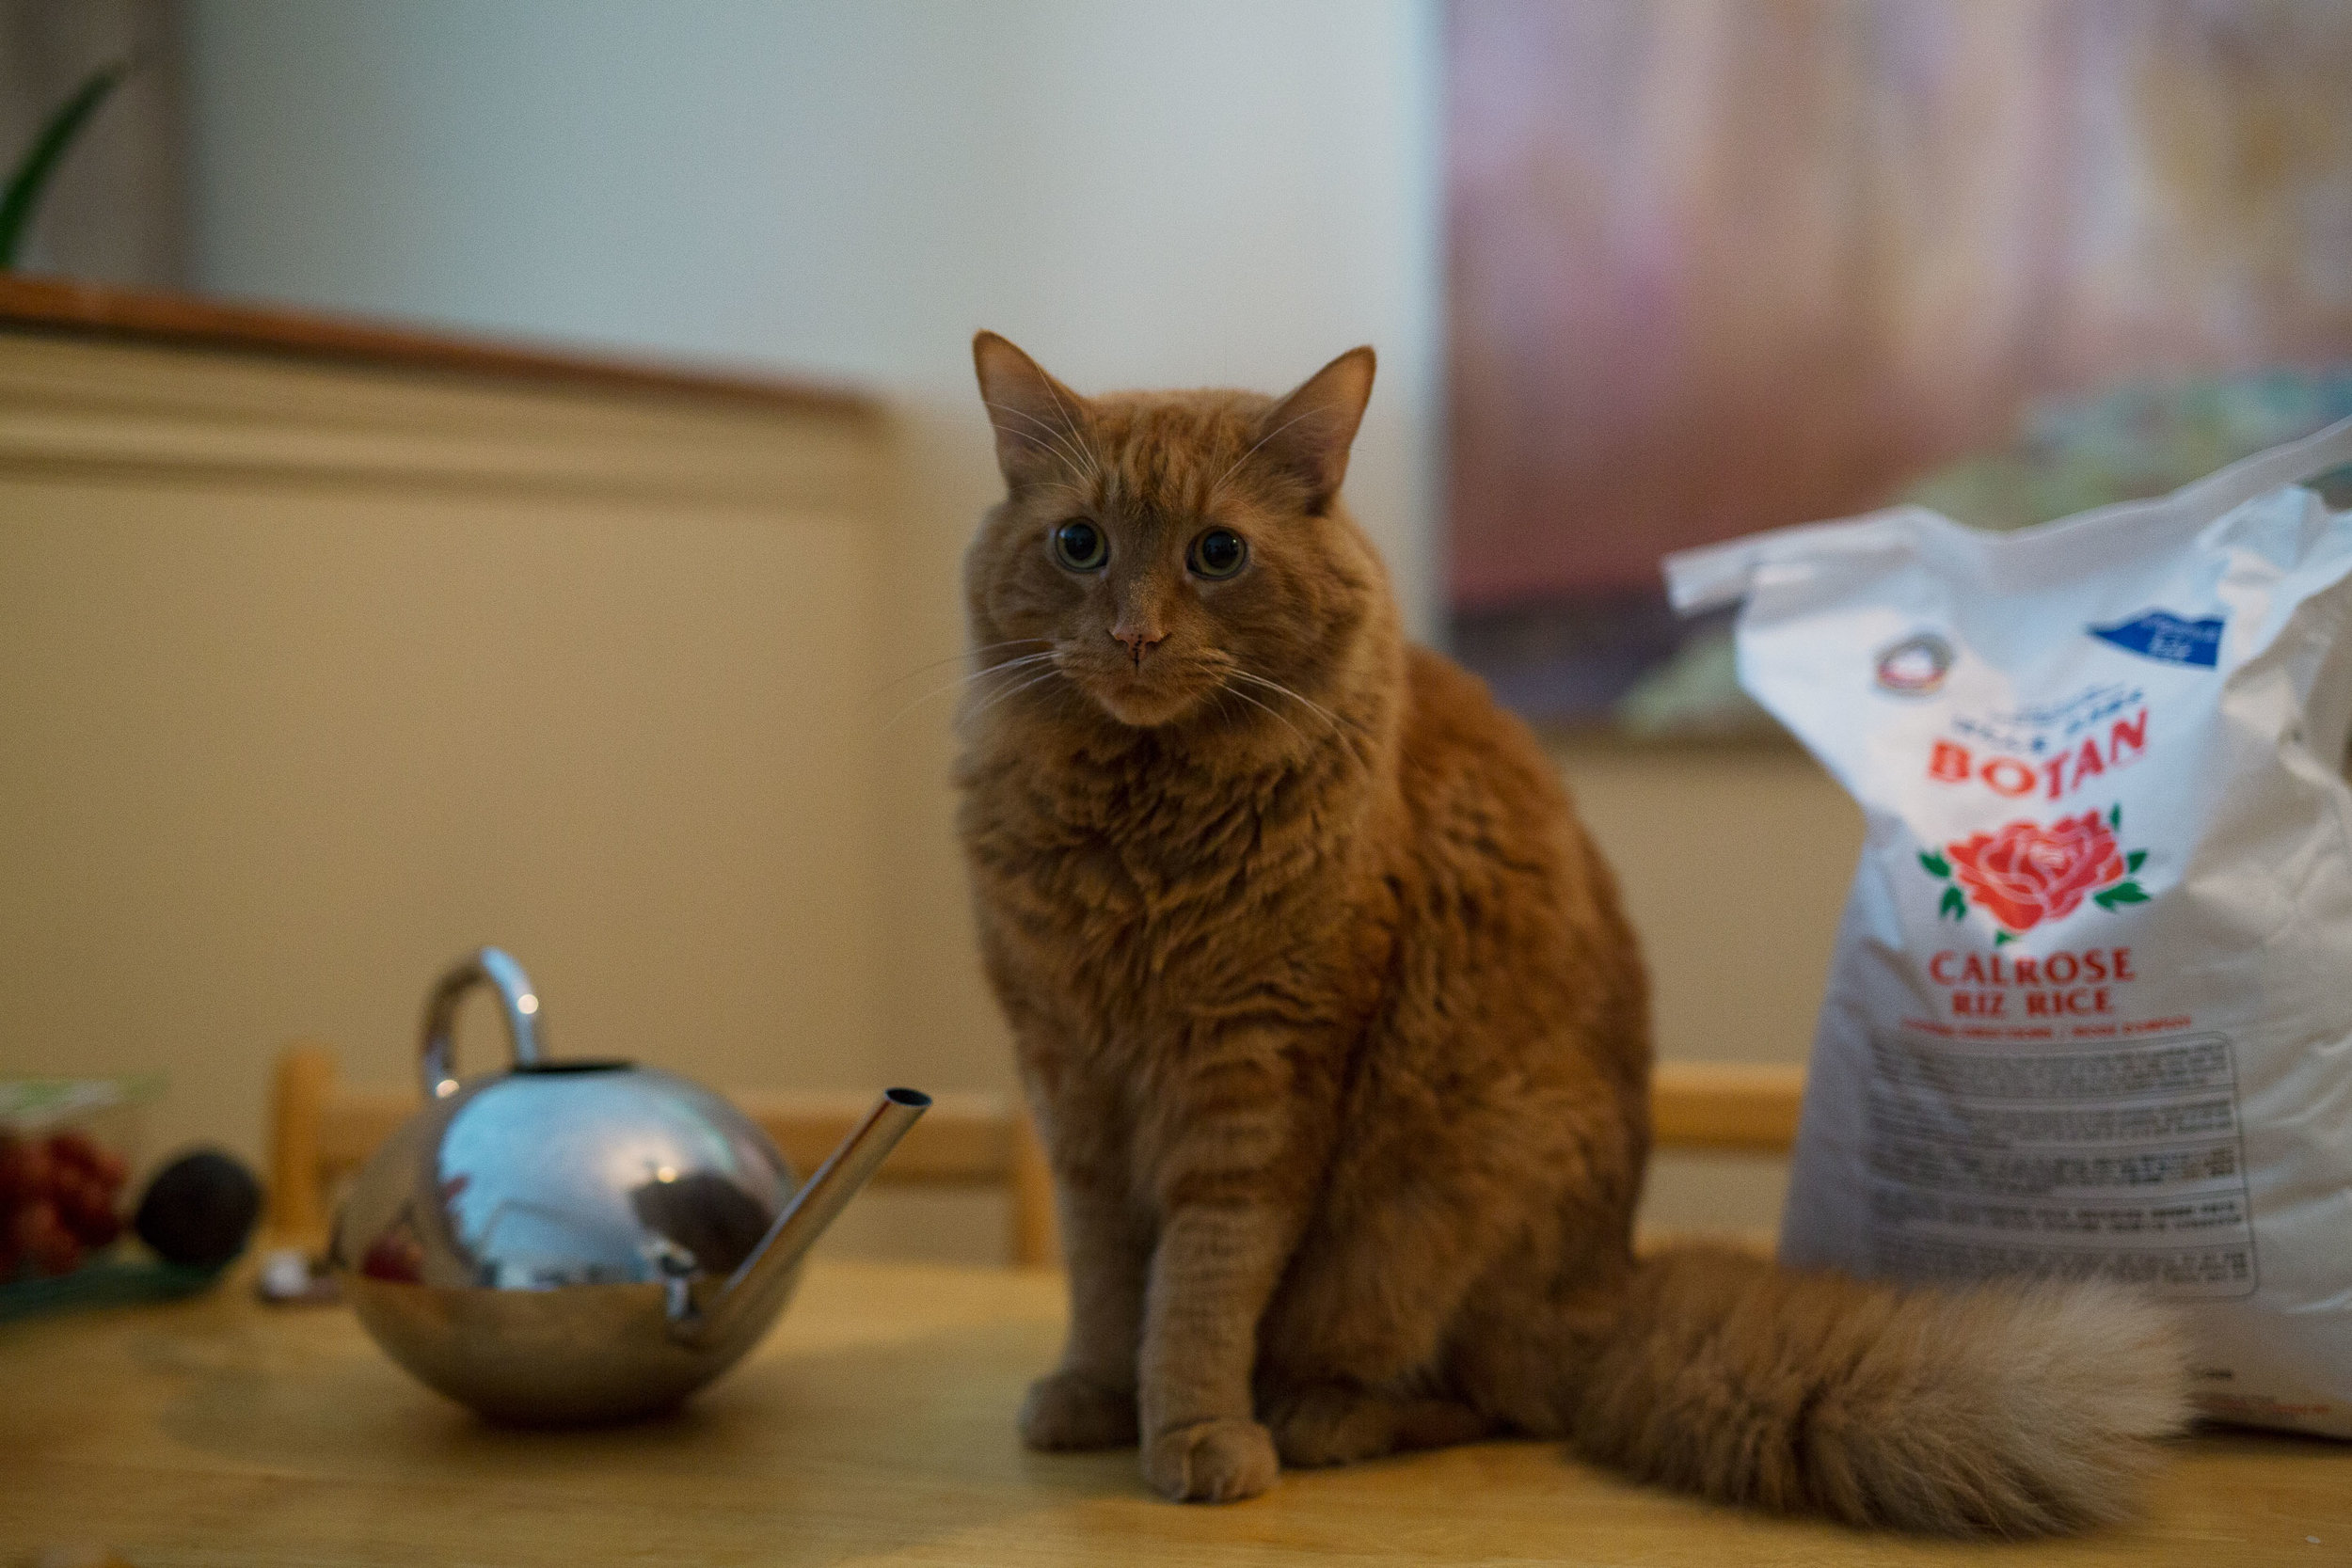 Briony Smith's cat on the counter